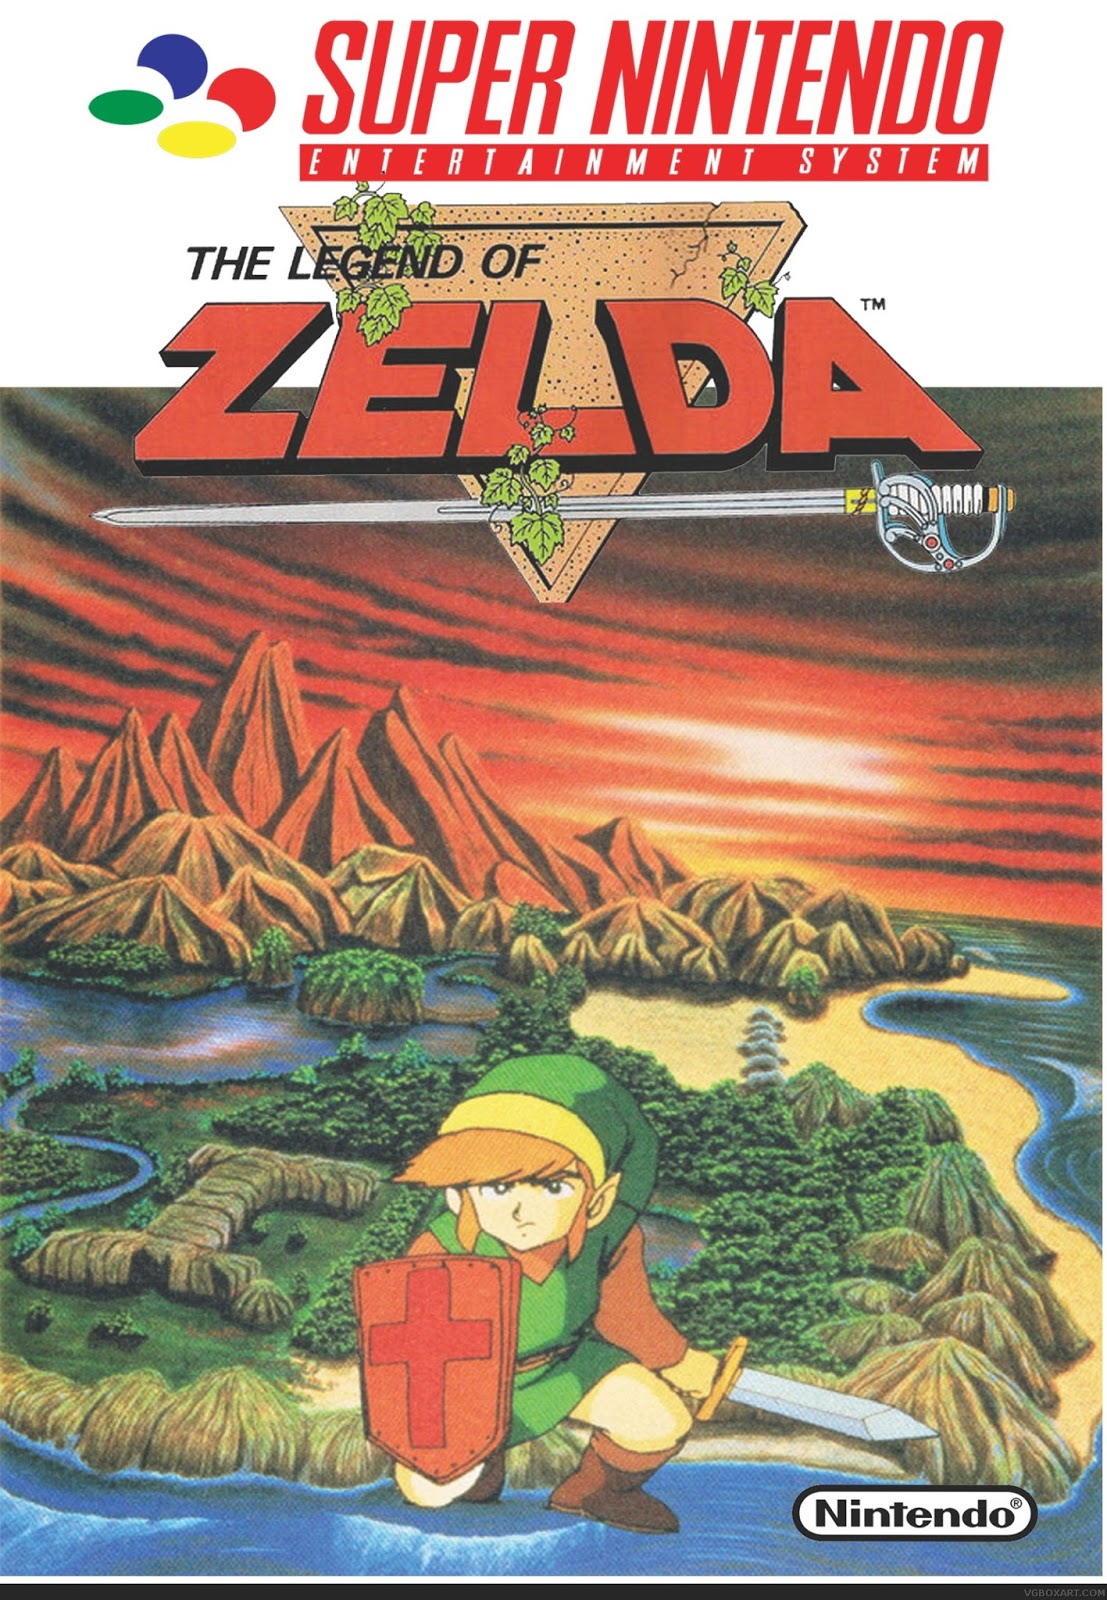 DETONADO - The Legend of Zelda: A Link to the Past | Games